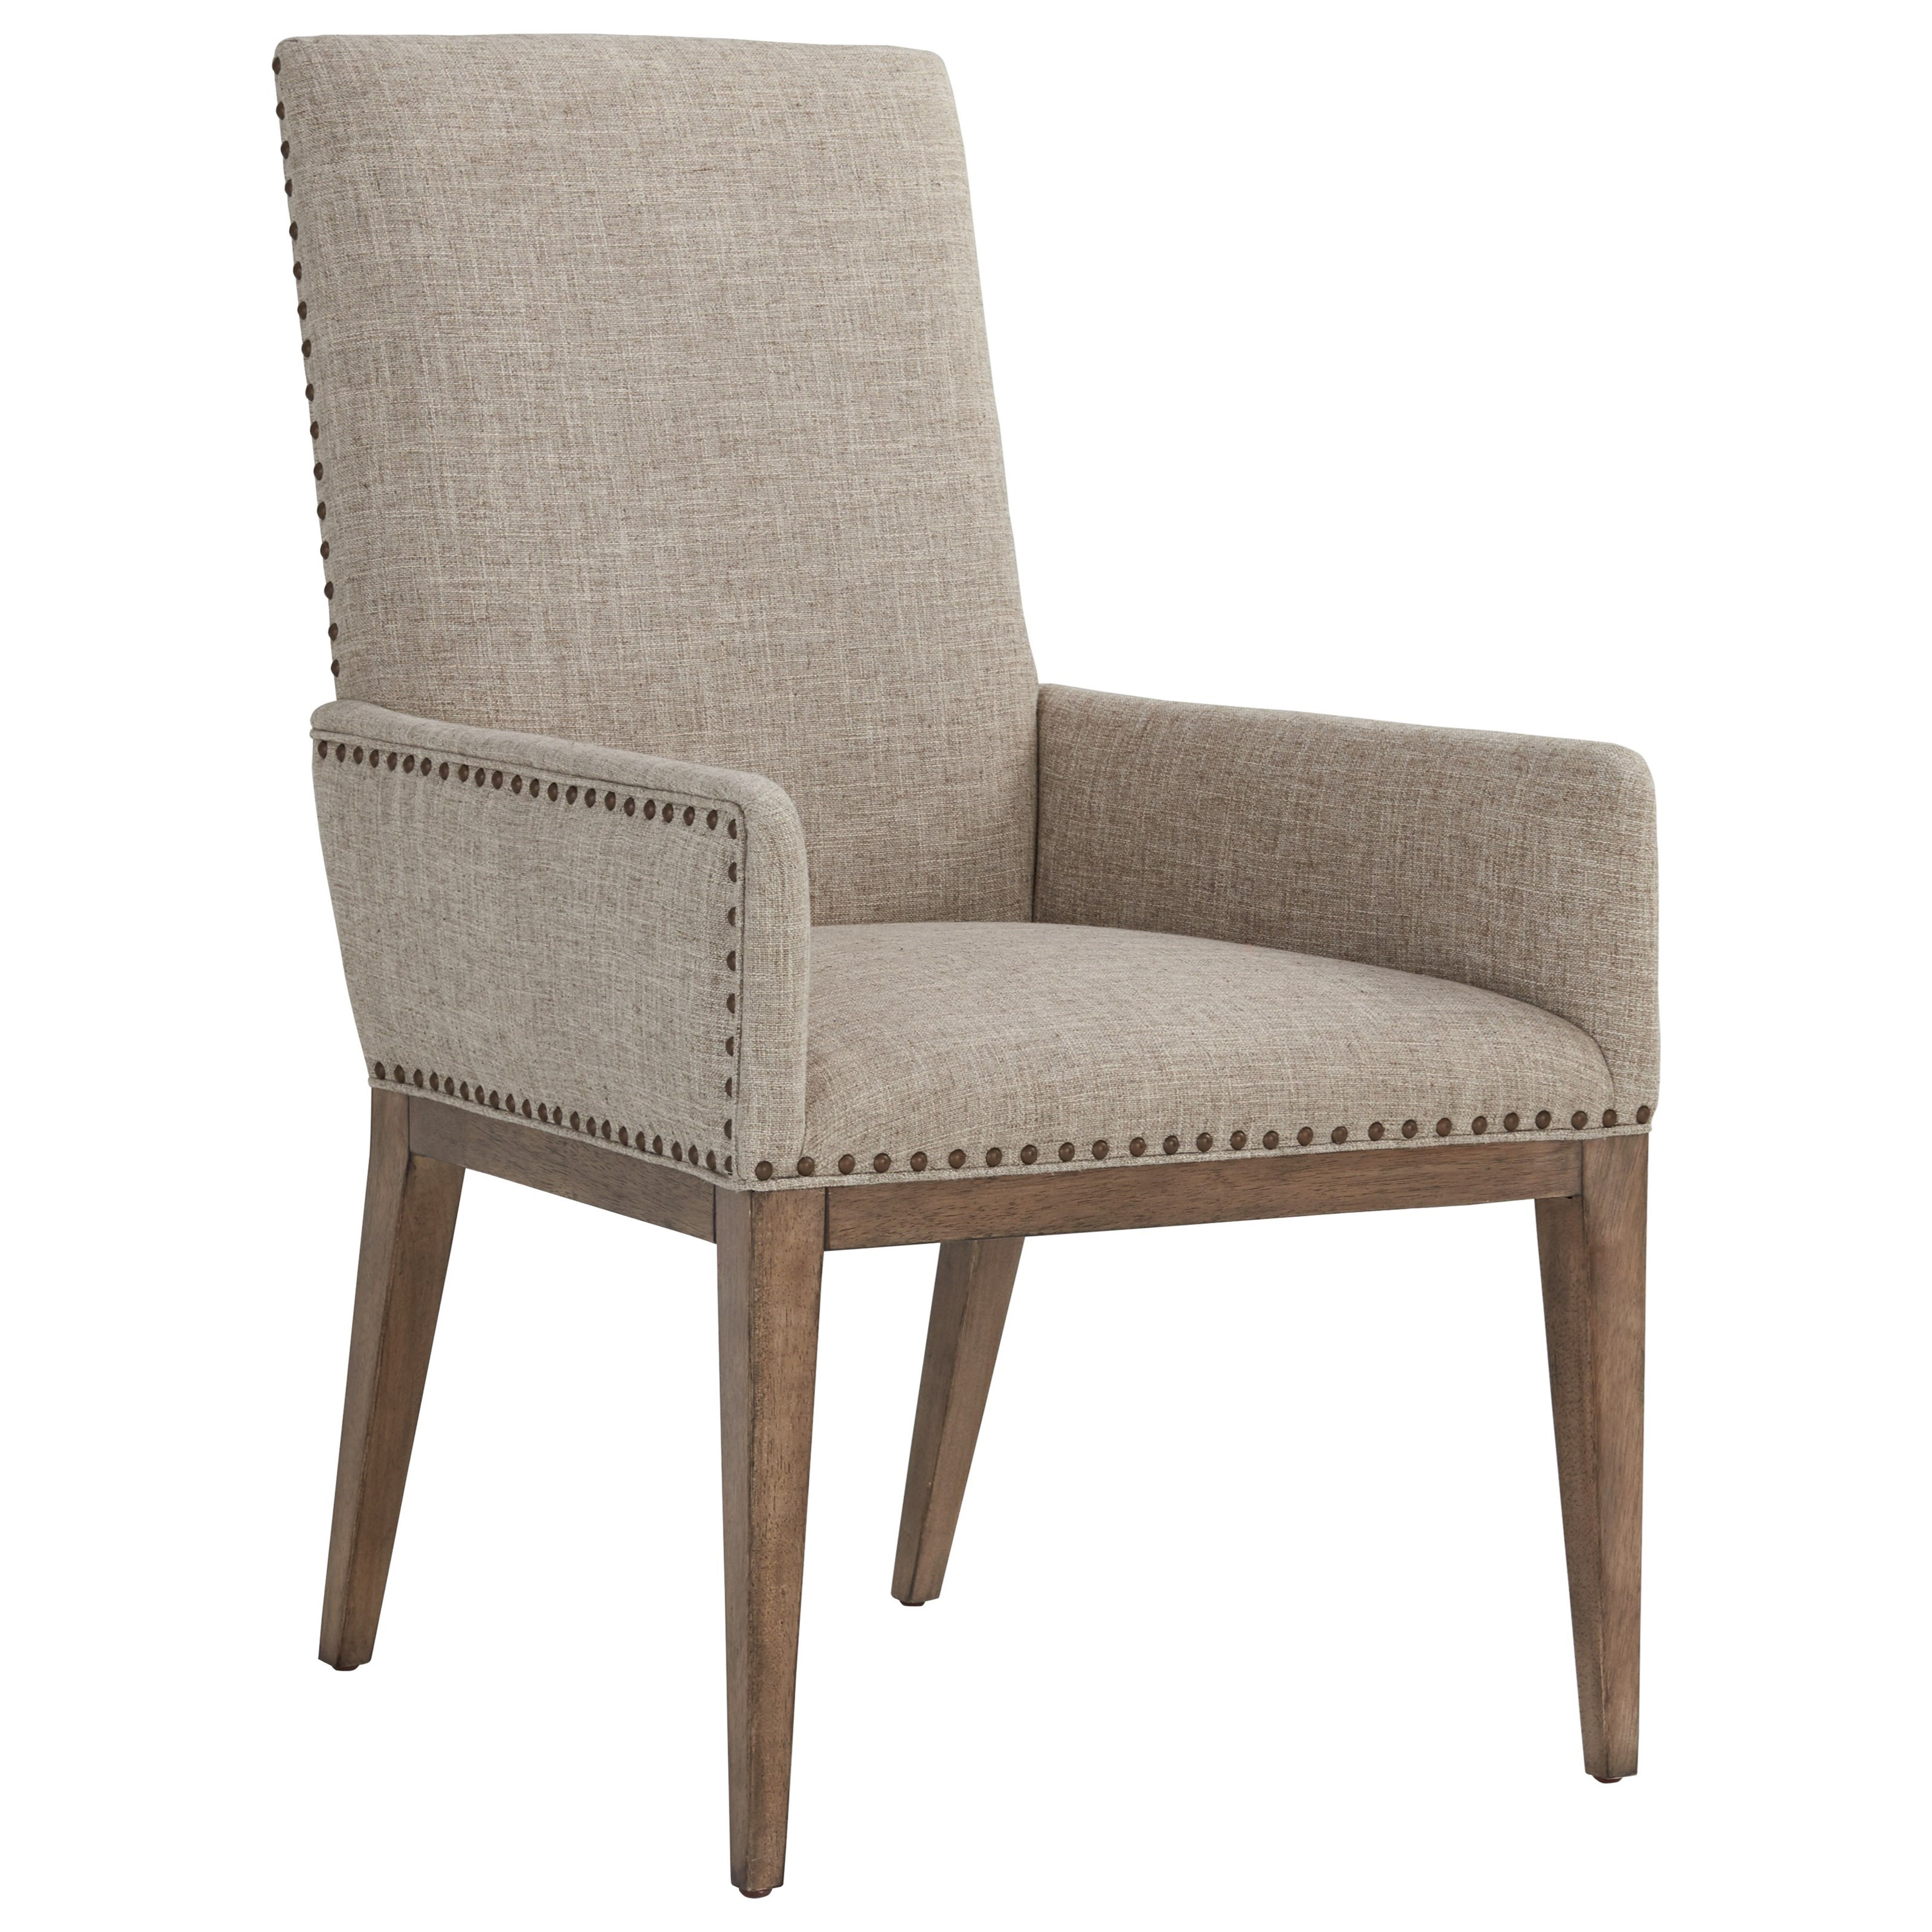 Cypress Point Devereaux Upholstered Arm Chair by Tommy Bahama Home at Baer's Furniture